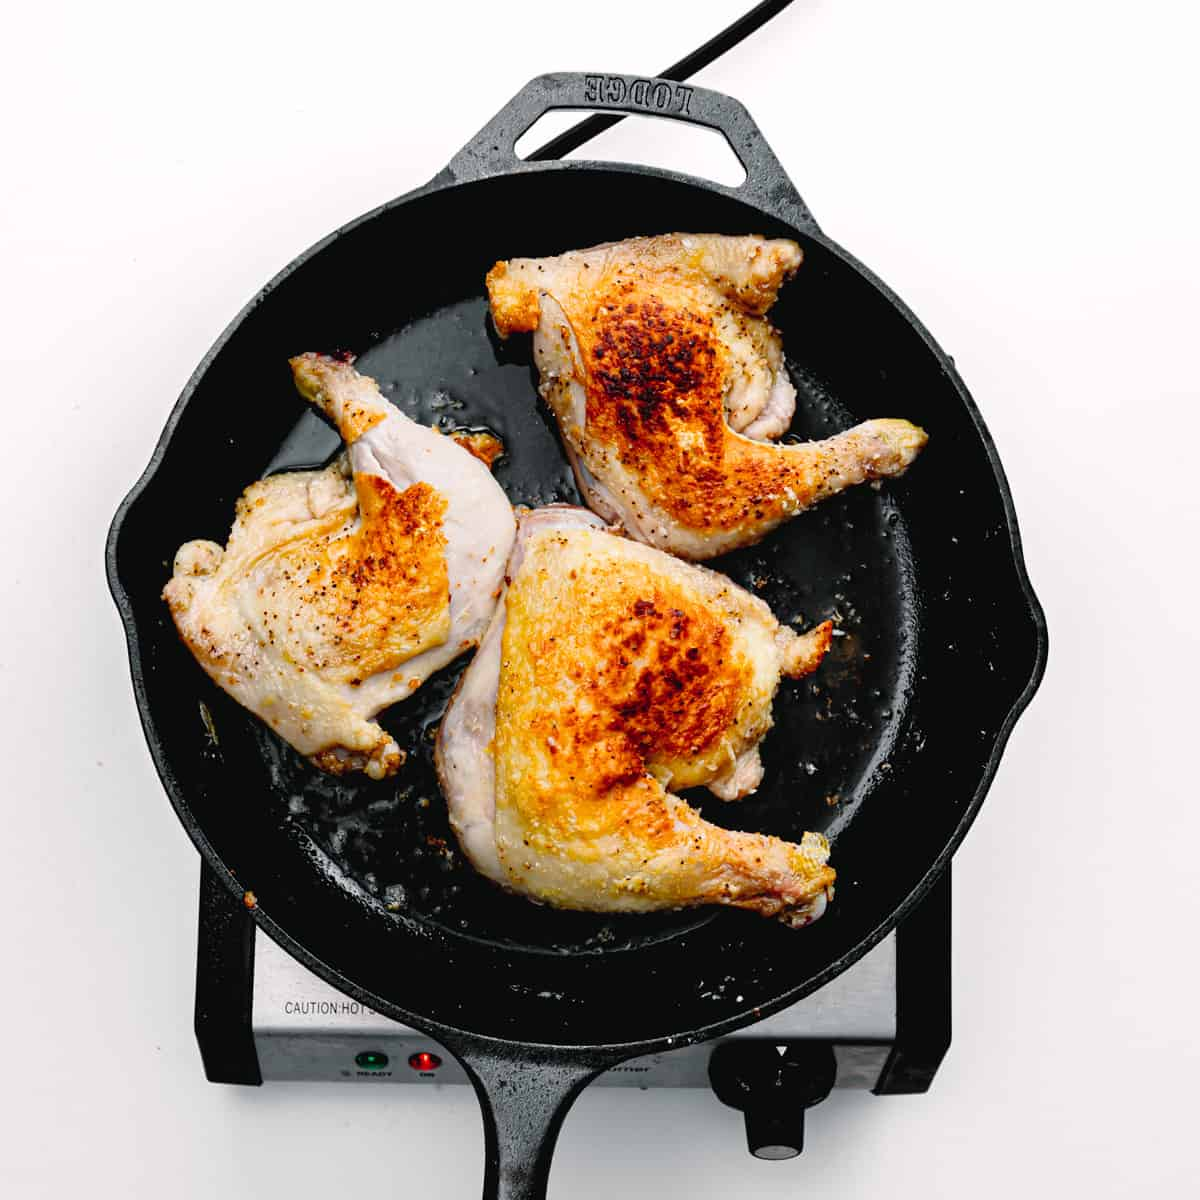 Browned chicken.